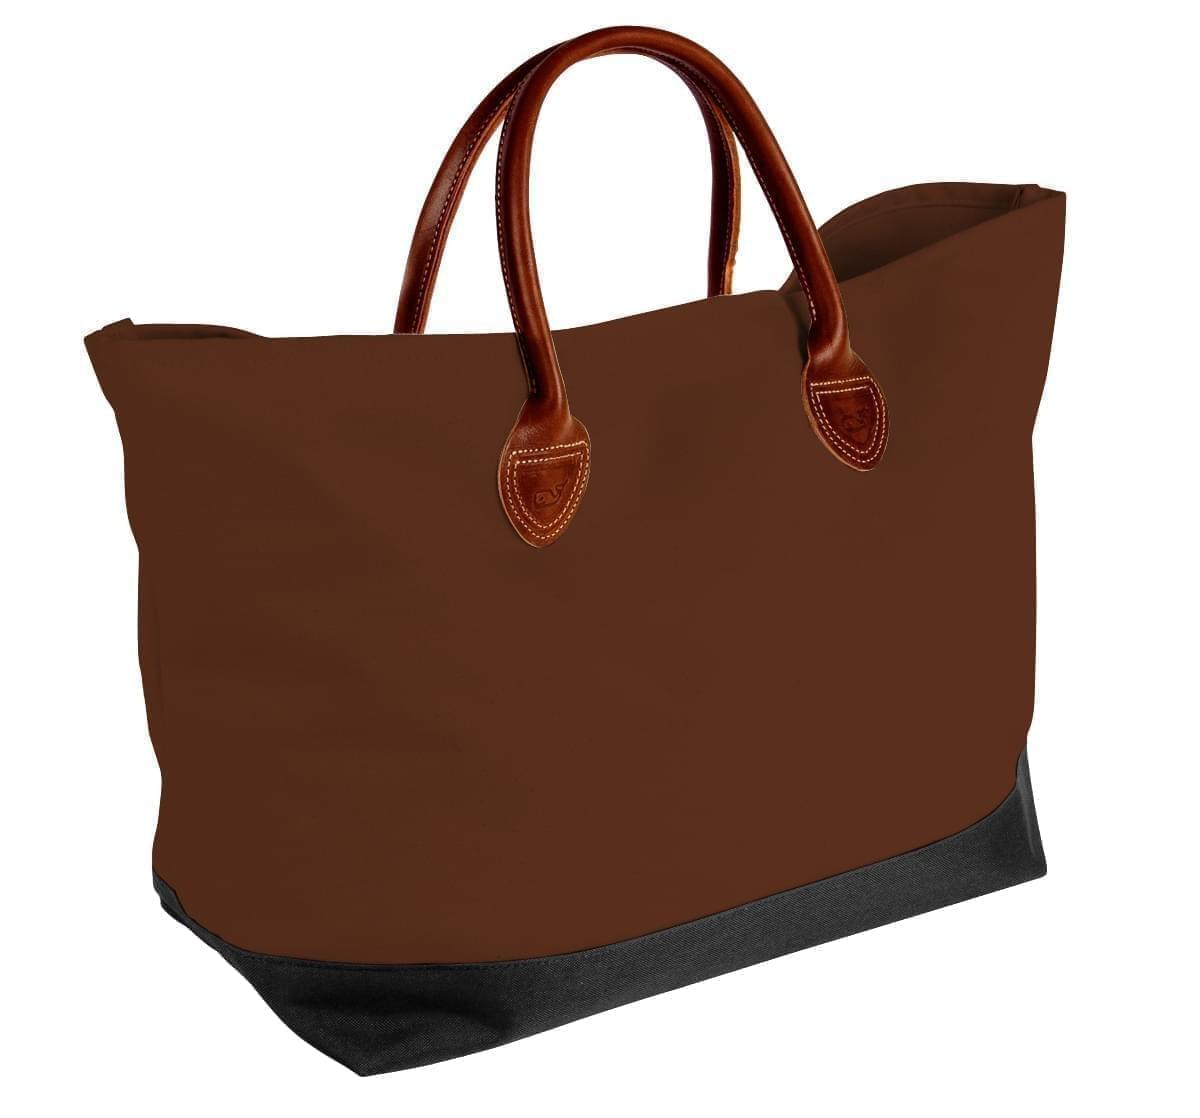 USA Made Canvas Leather Handle Totes, Brown-Black, 10899-CA9